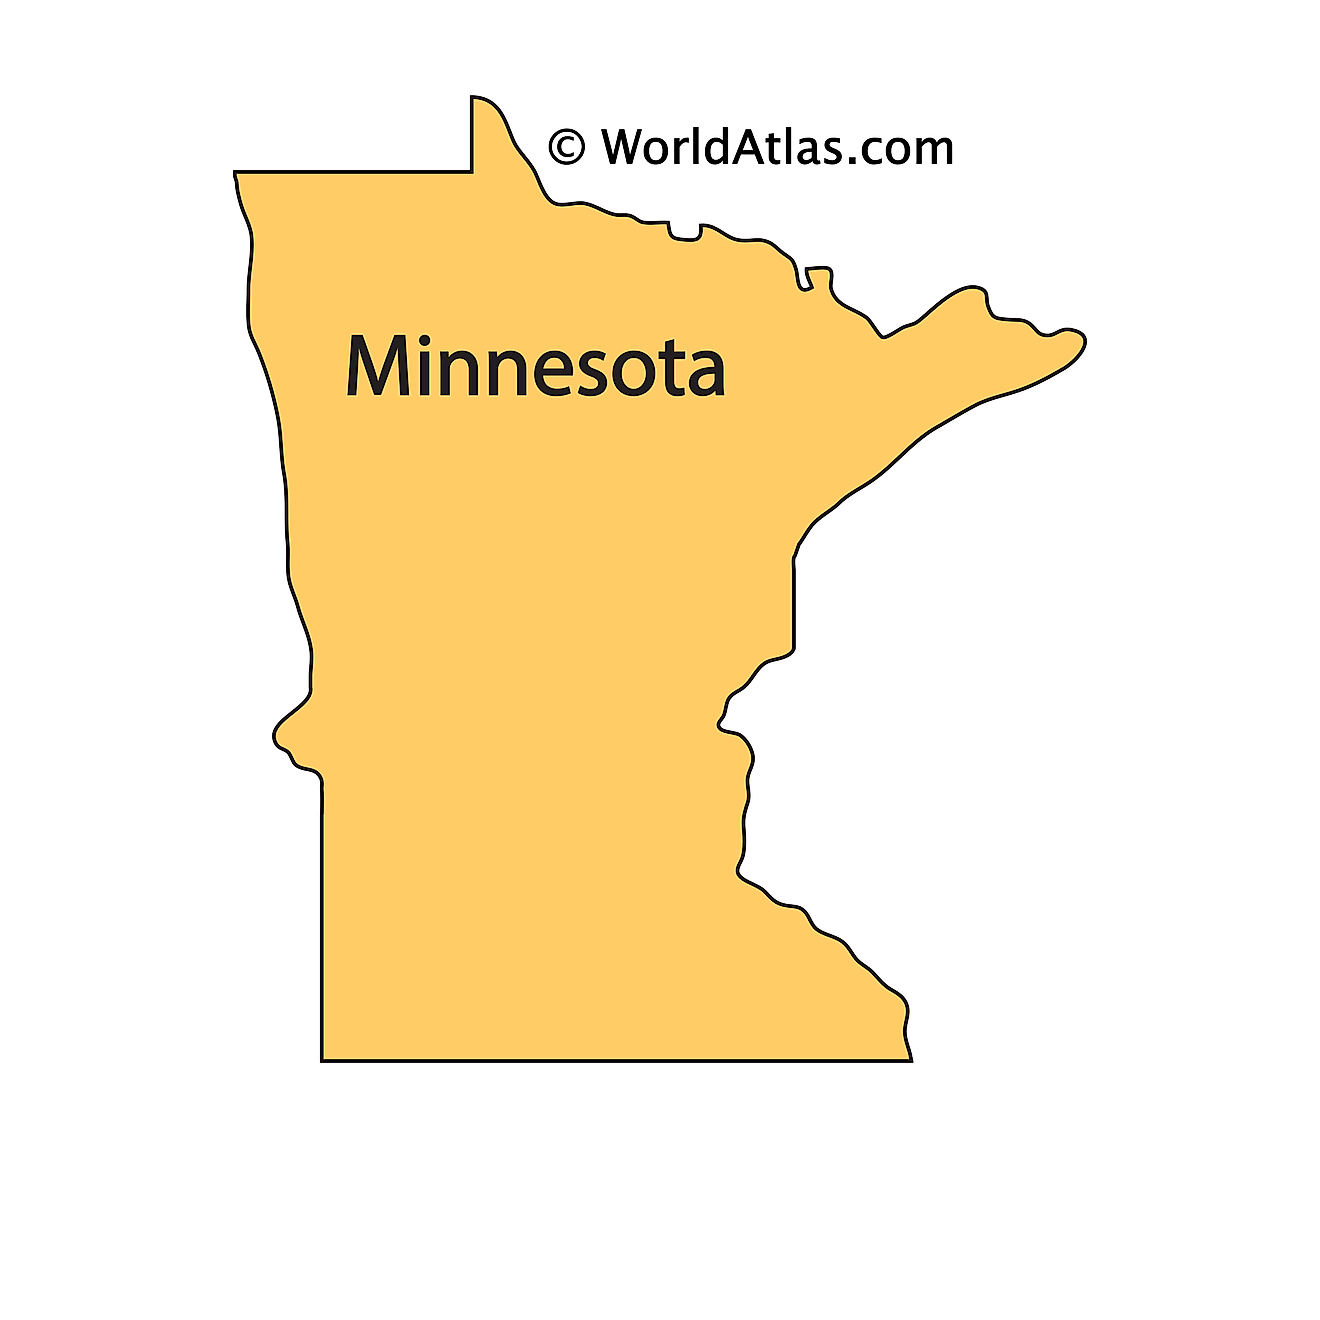 Outline Map of Minnesota